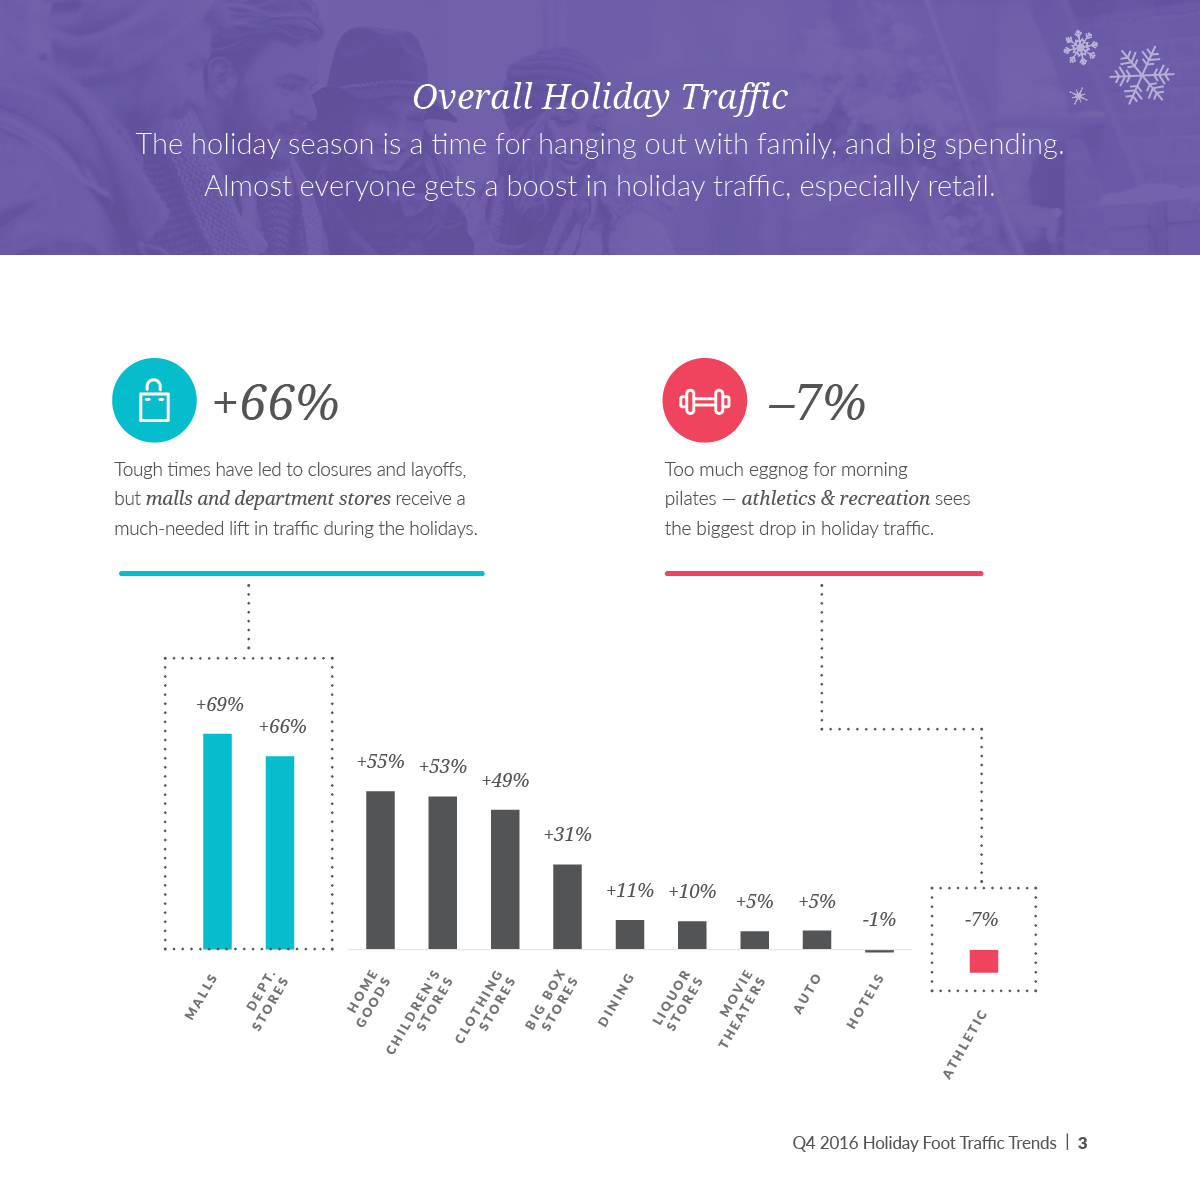 Overall Holiday Traffic